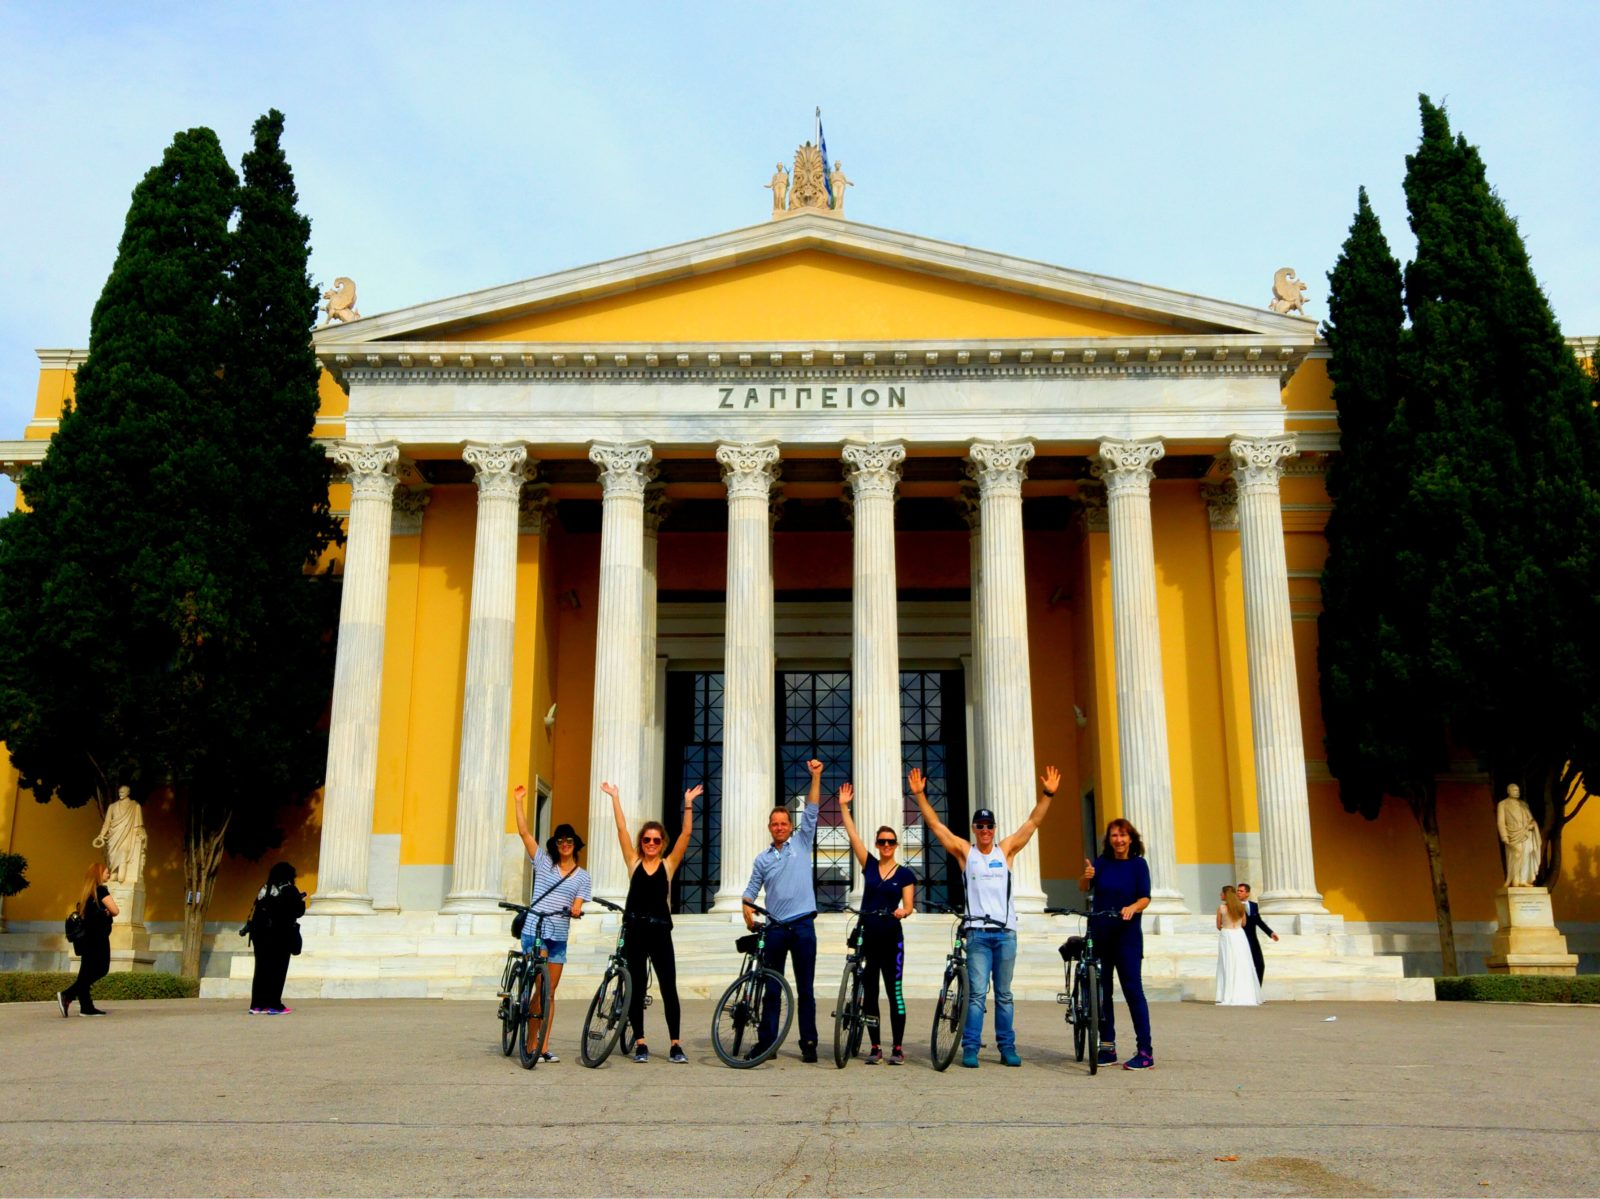 See Athens by Βike Family biking activity in Athens kidslovegreece Greece children sightseeing Acropolis amazing bicycles cycling monuments private specially designed city tour amazing experience